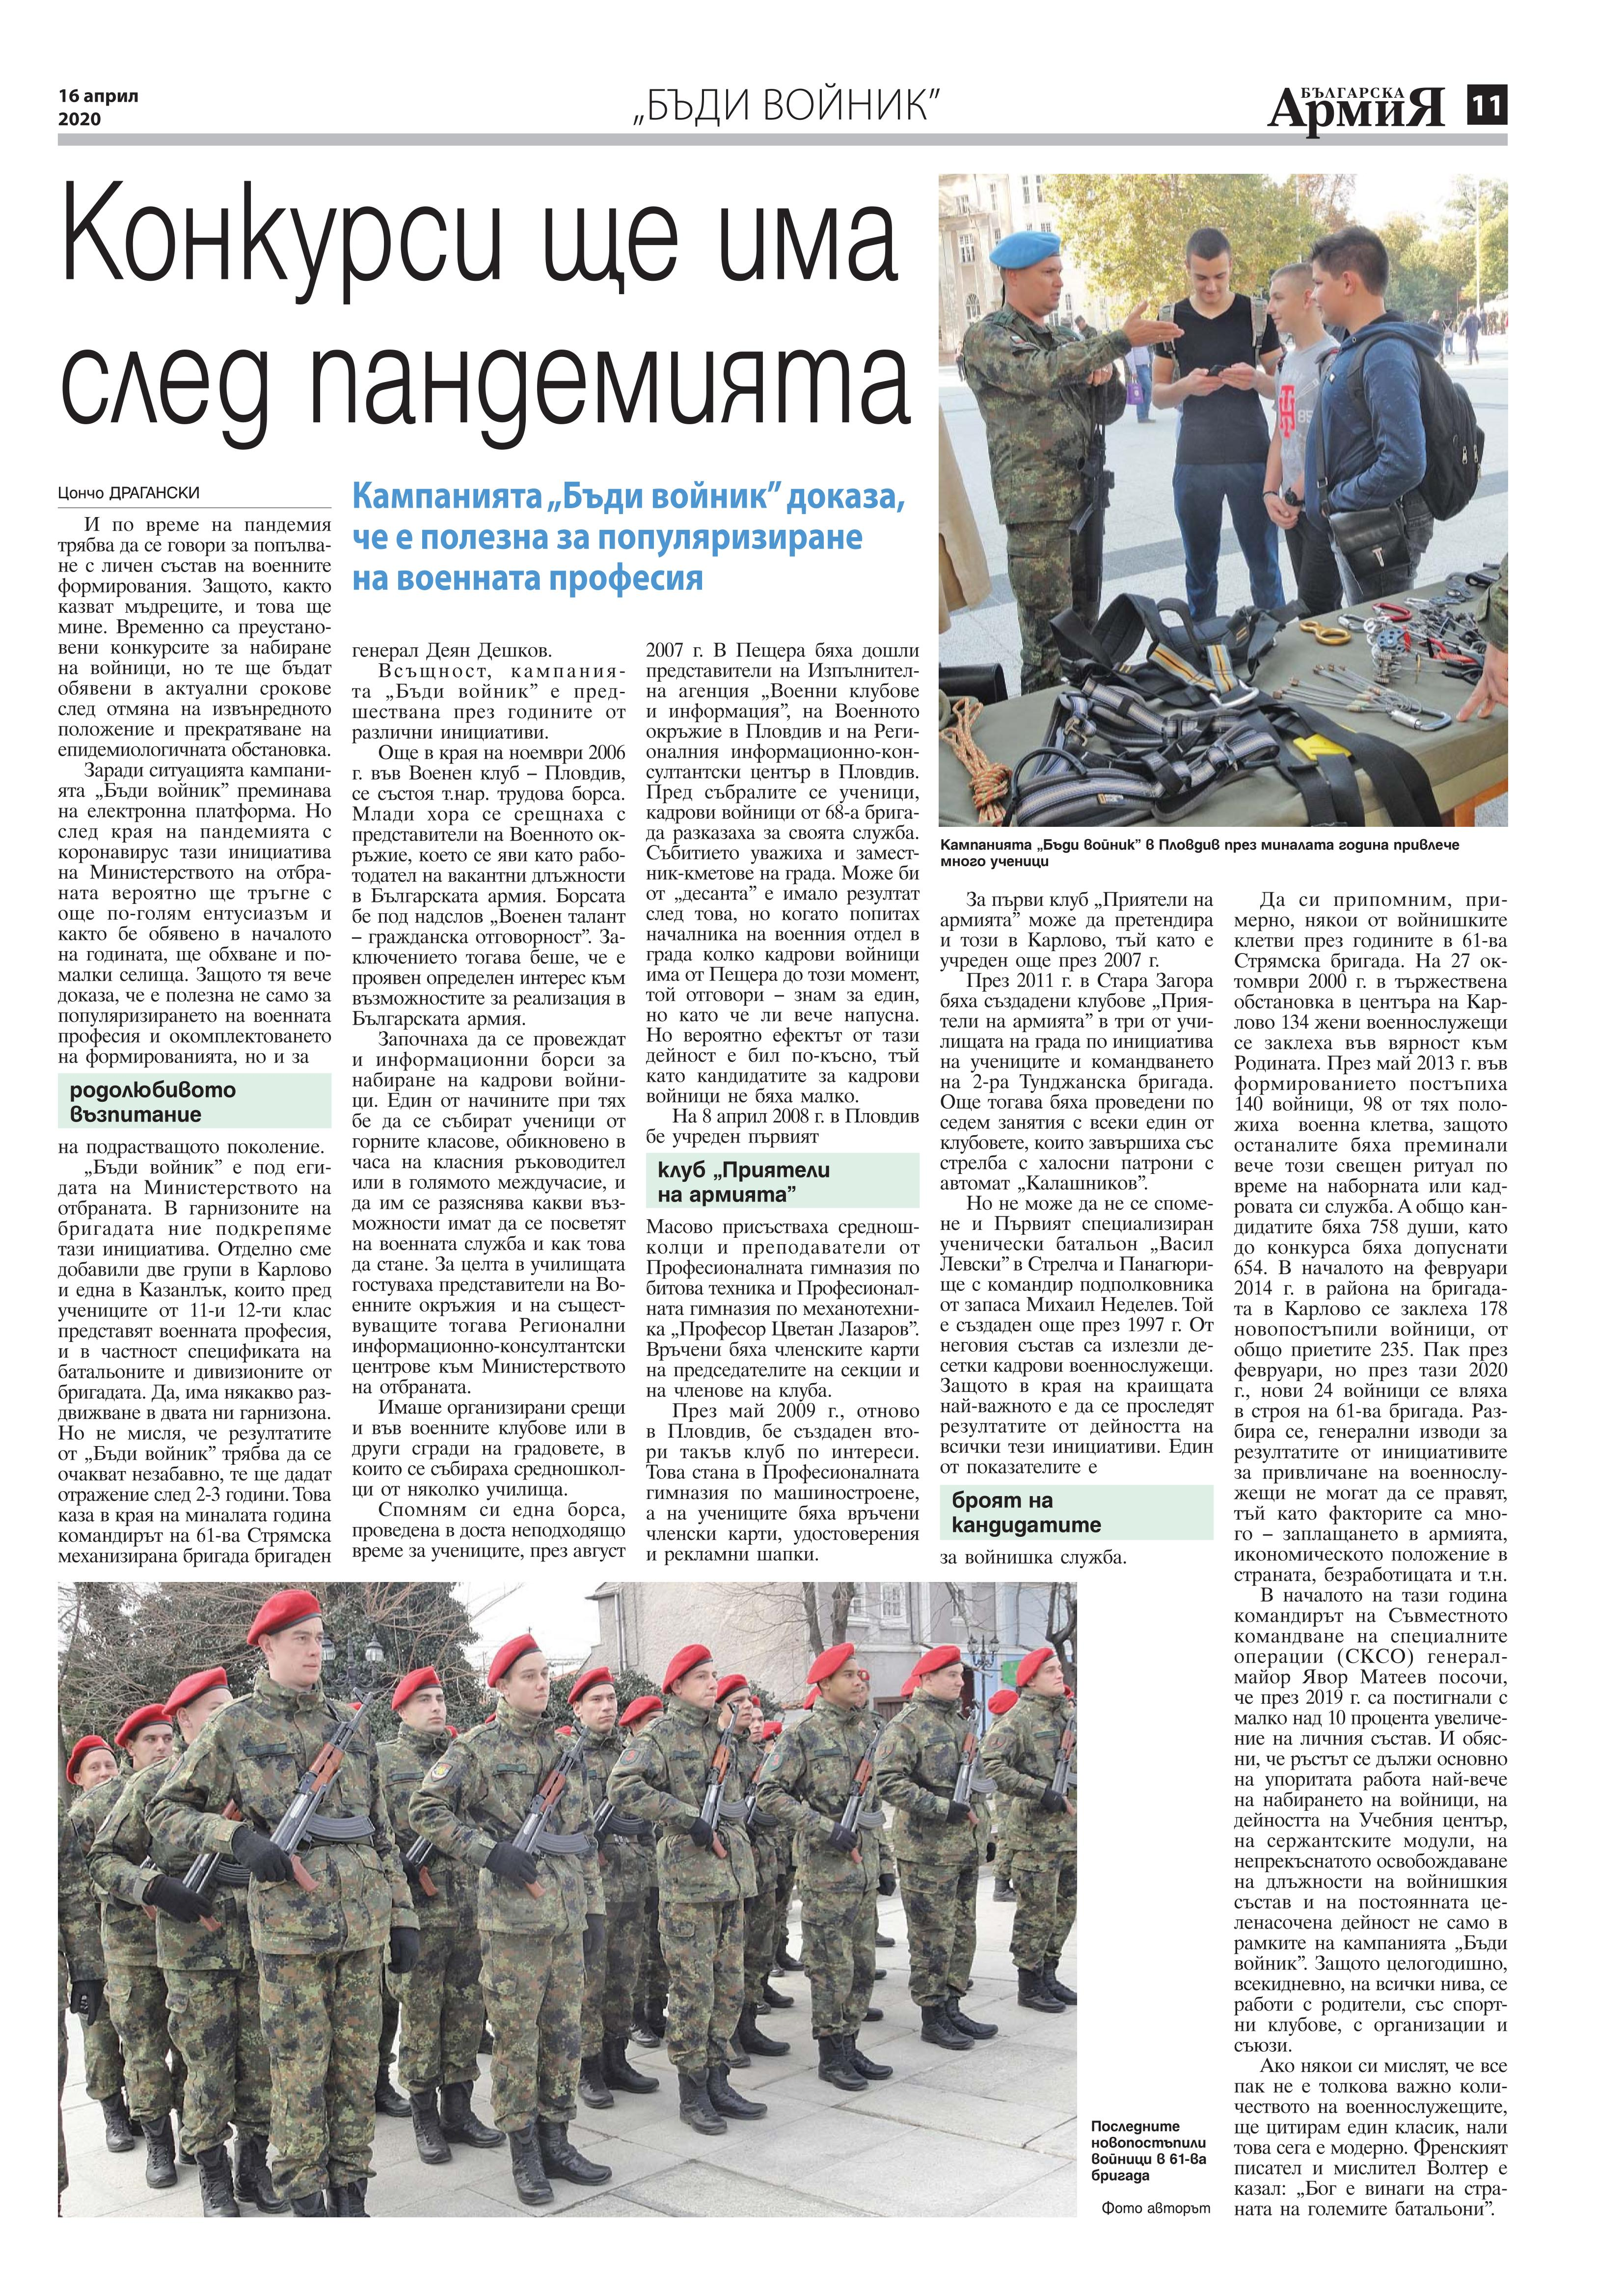 https://armymedia.bg/wp-content/uploads/2015/06/11.page1_-134.jpg